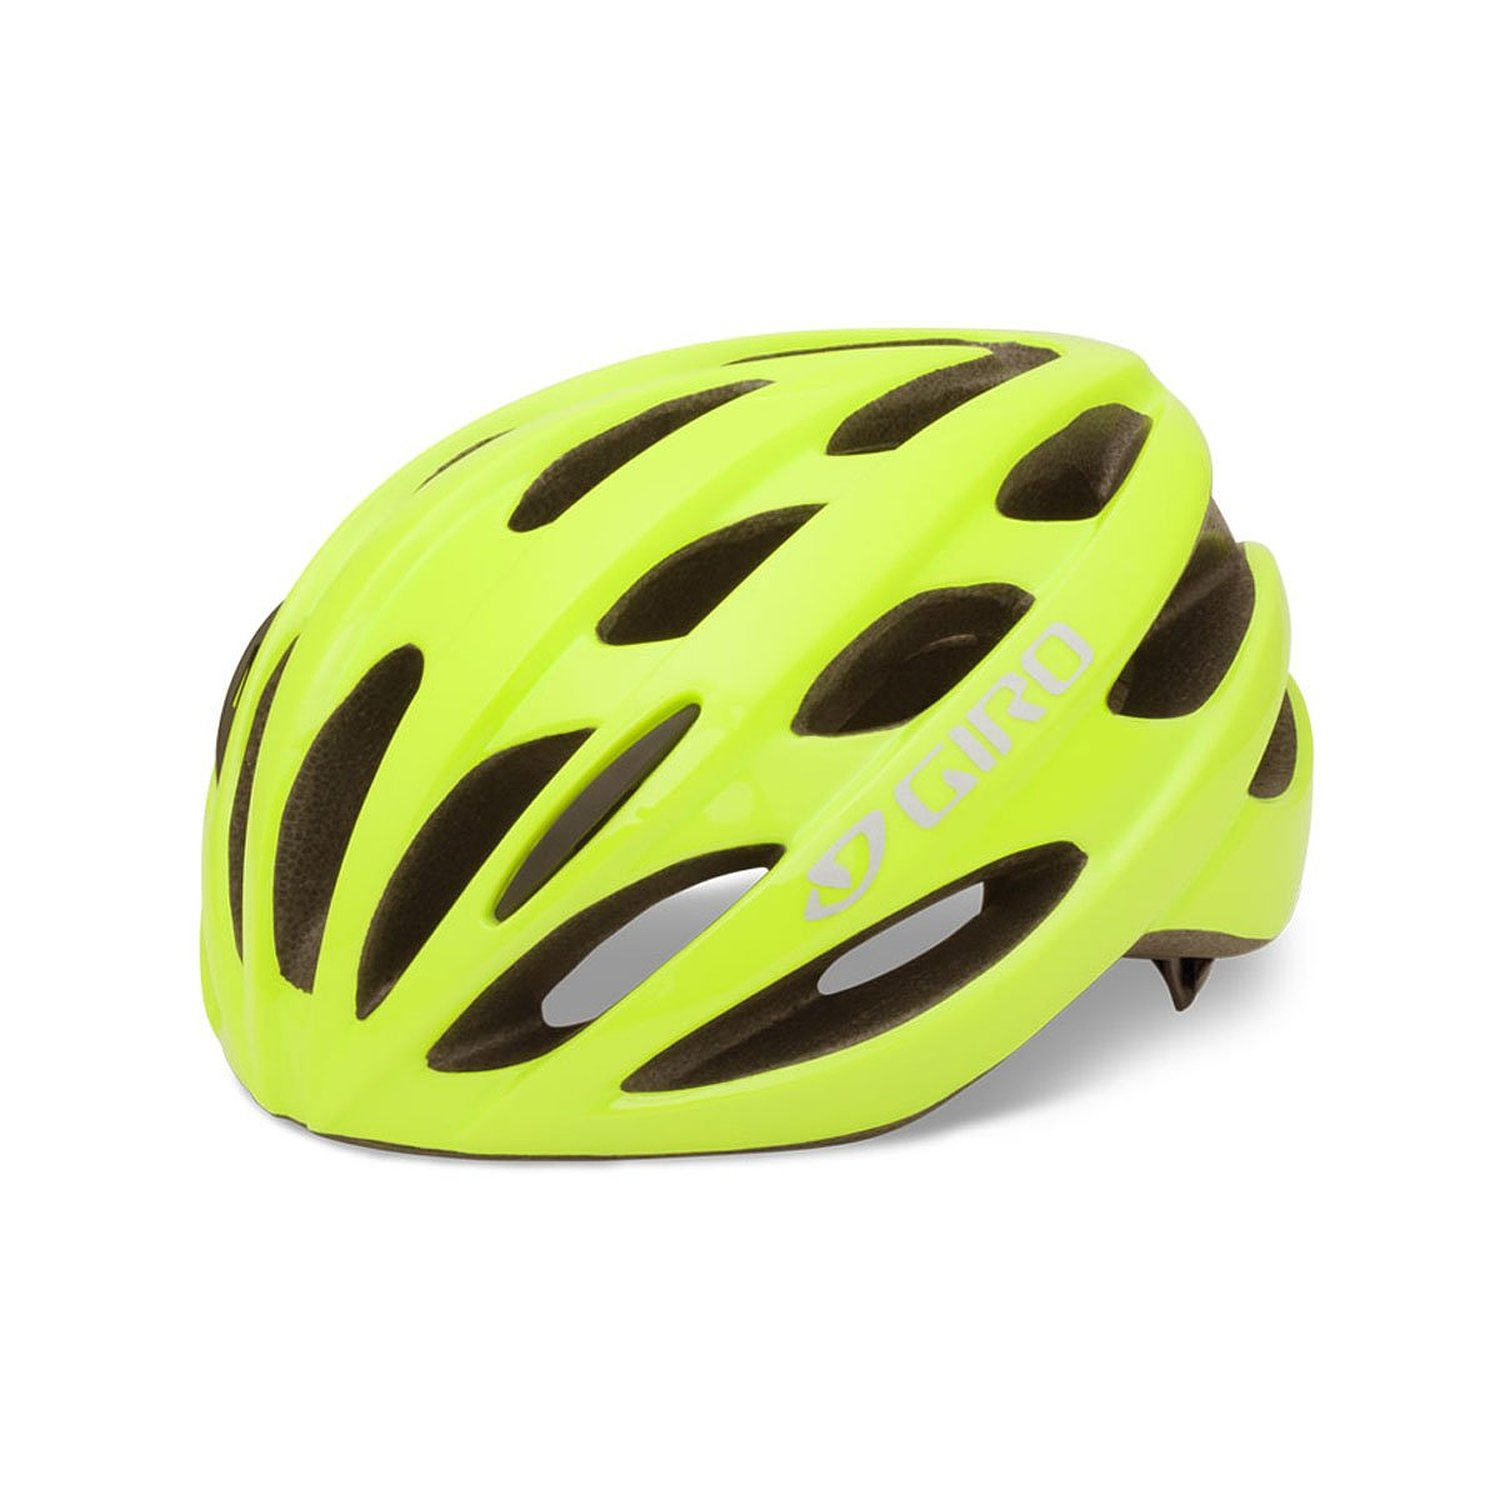 Yellow Giro Bicycle Helmets